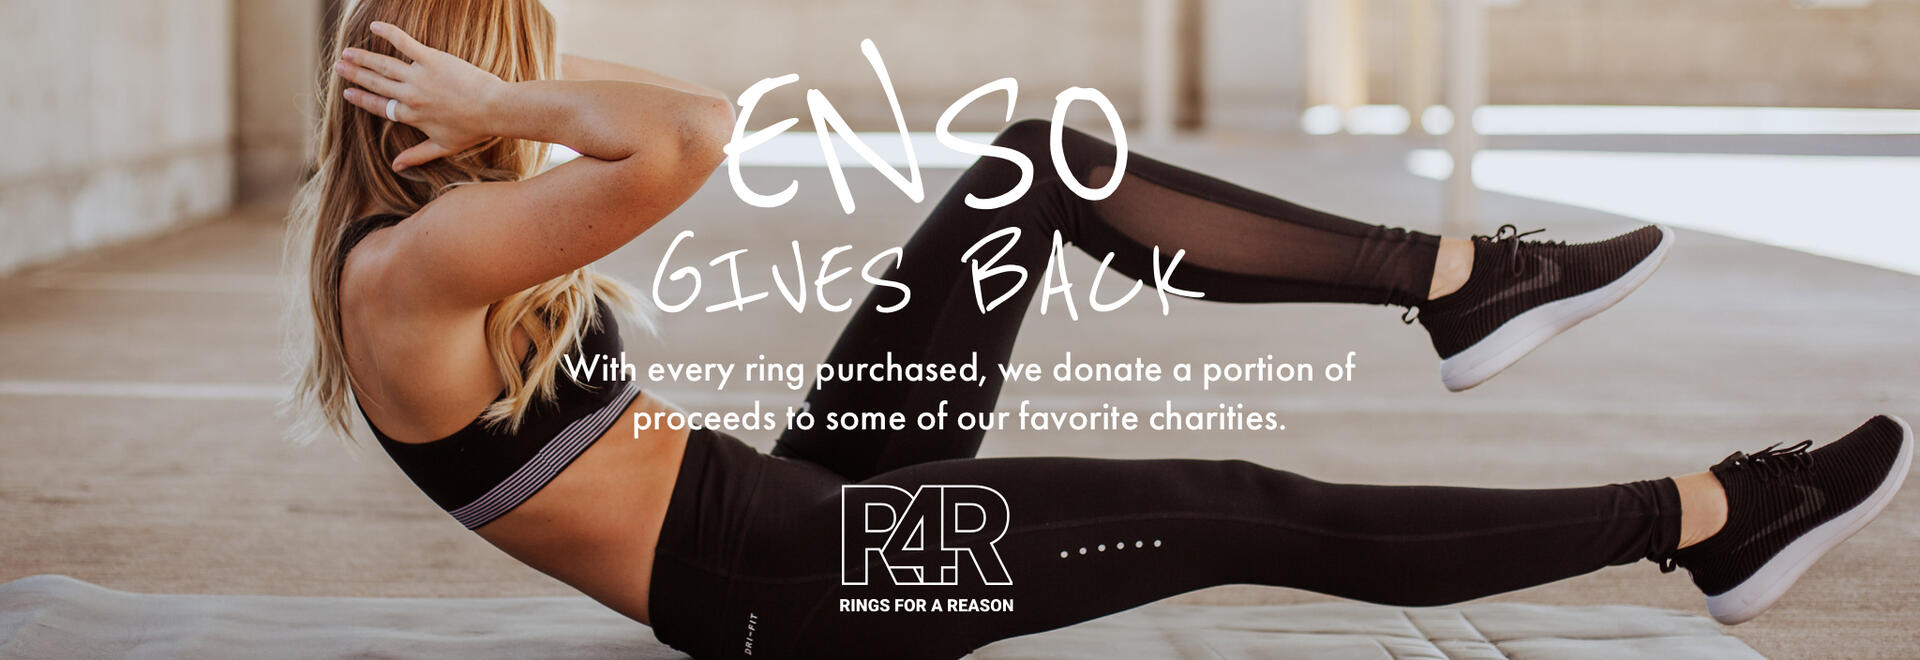 Enso gives back | With every ring purchase, we donate a portion of the proceeds to some of our favorite charities.